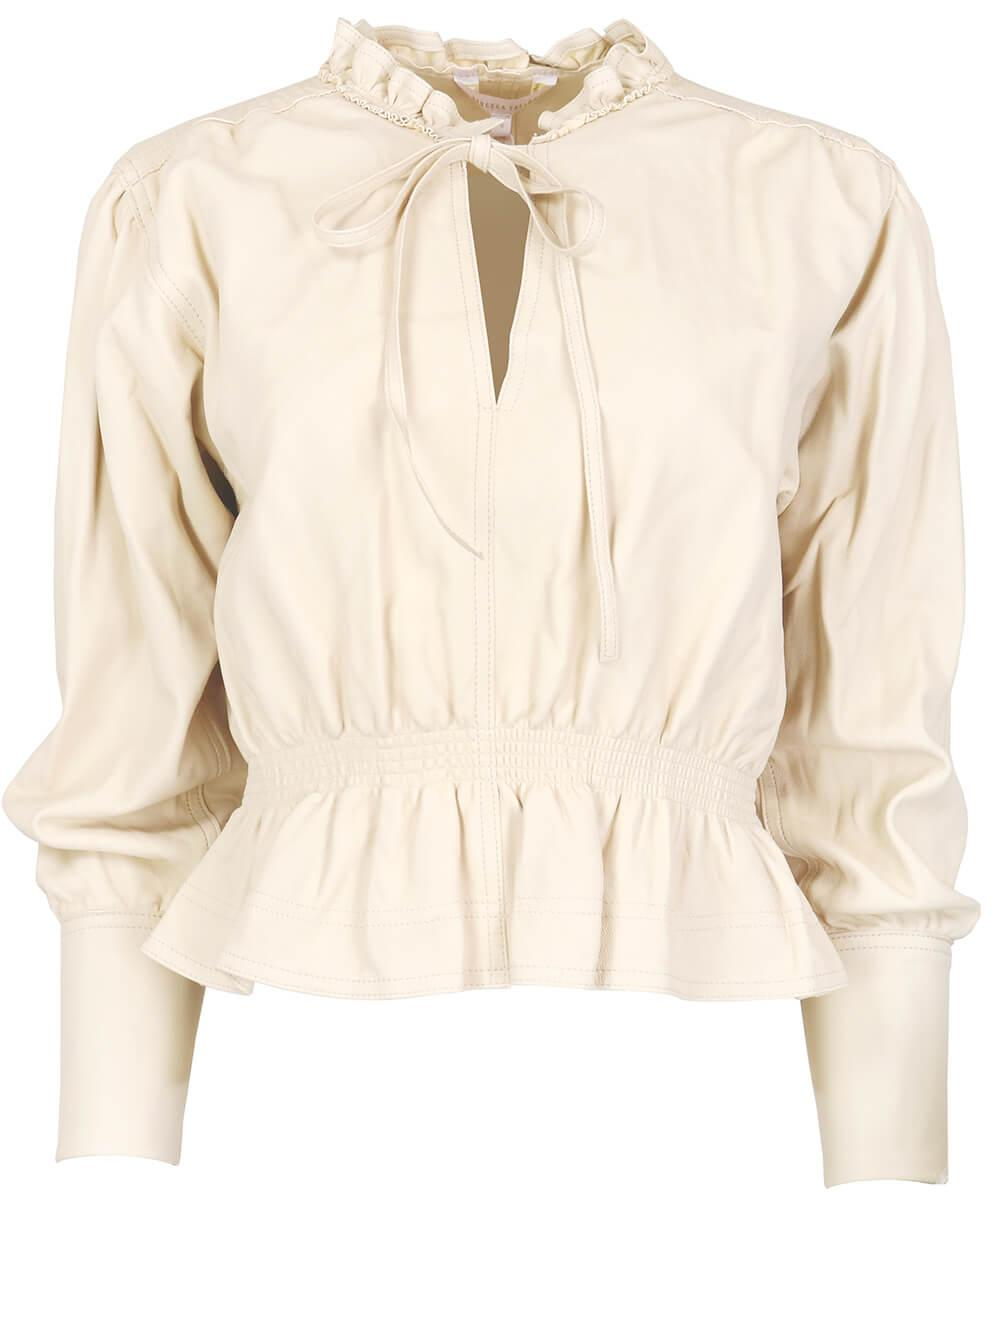 Glove Leather Blouse